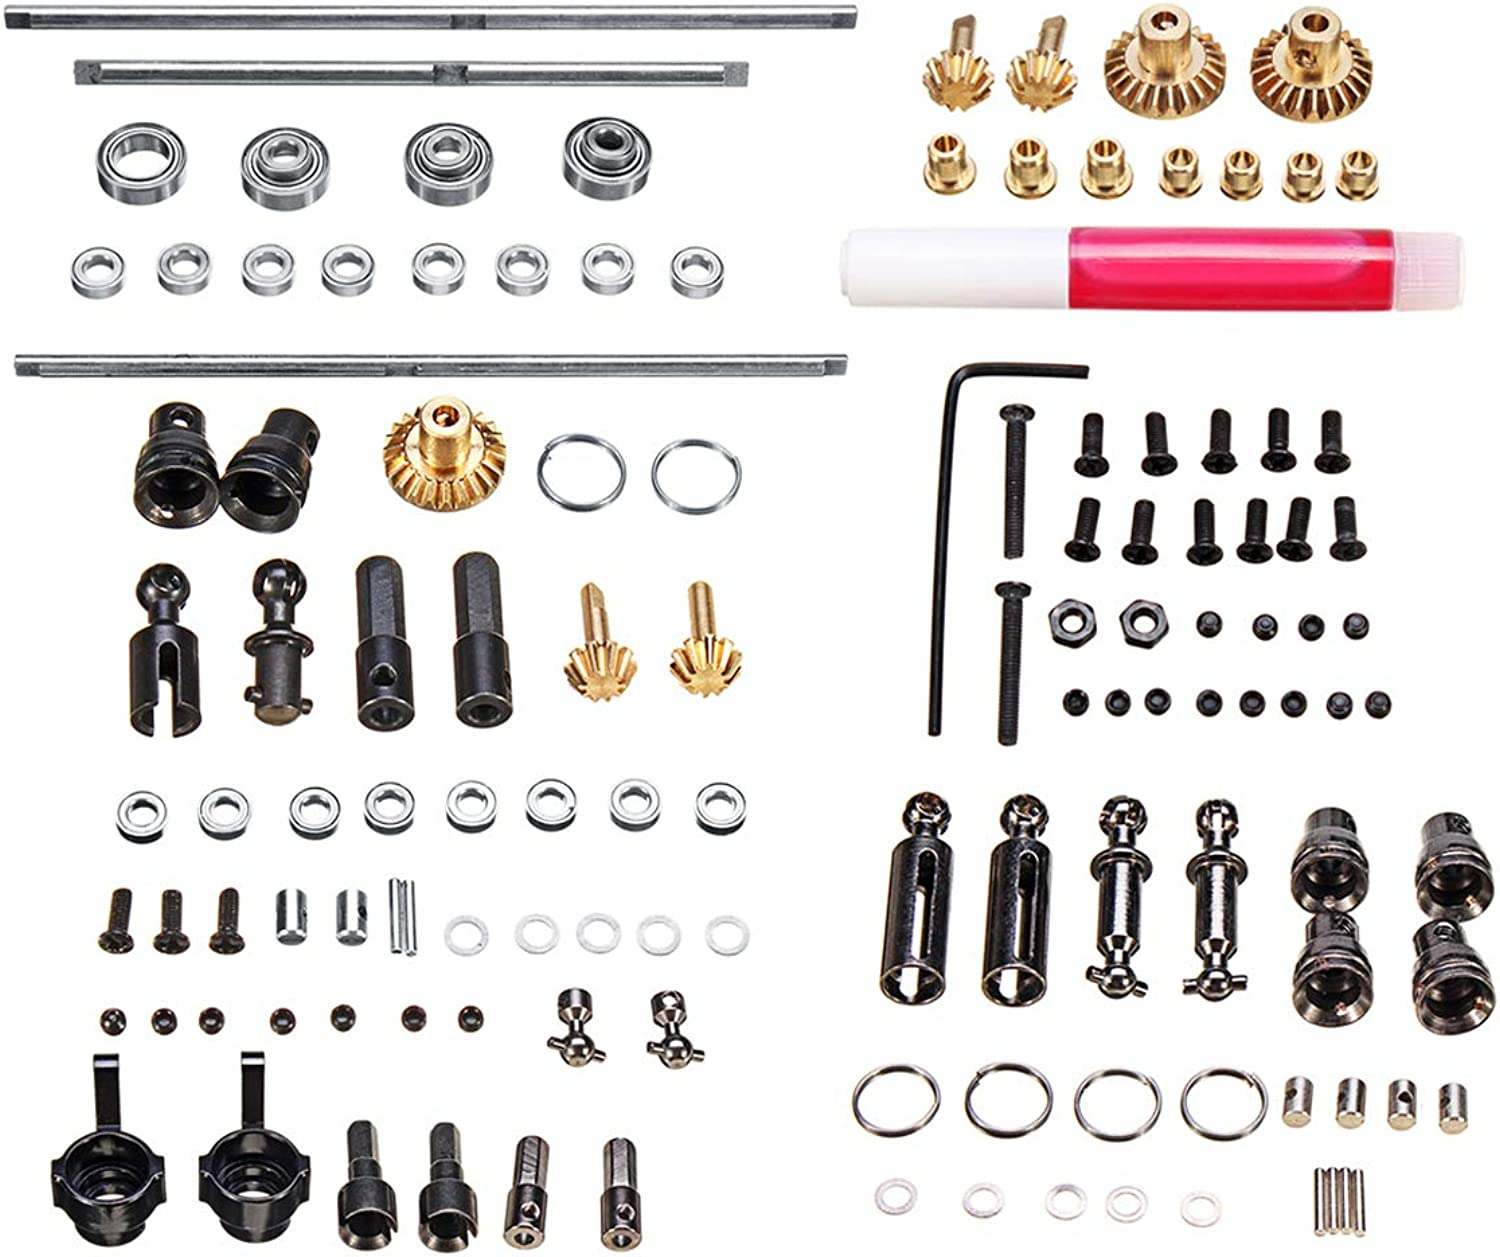 Studyset DIY Parts for WPL 1 16 6WD RC Car Military Truck Upgrade Metal OP Accessory Set Easy to Install Durable Metal & Plastic